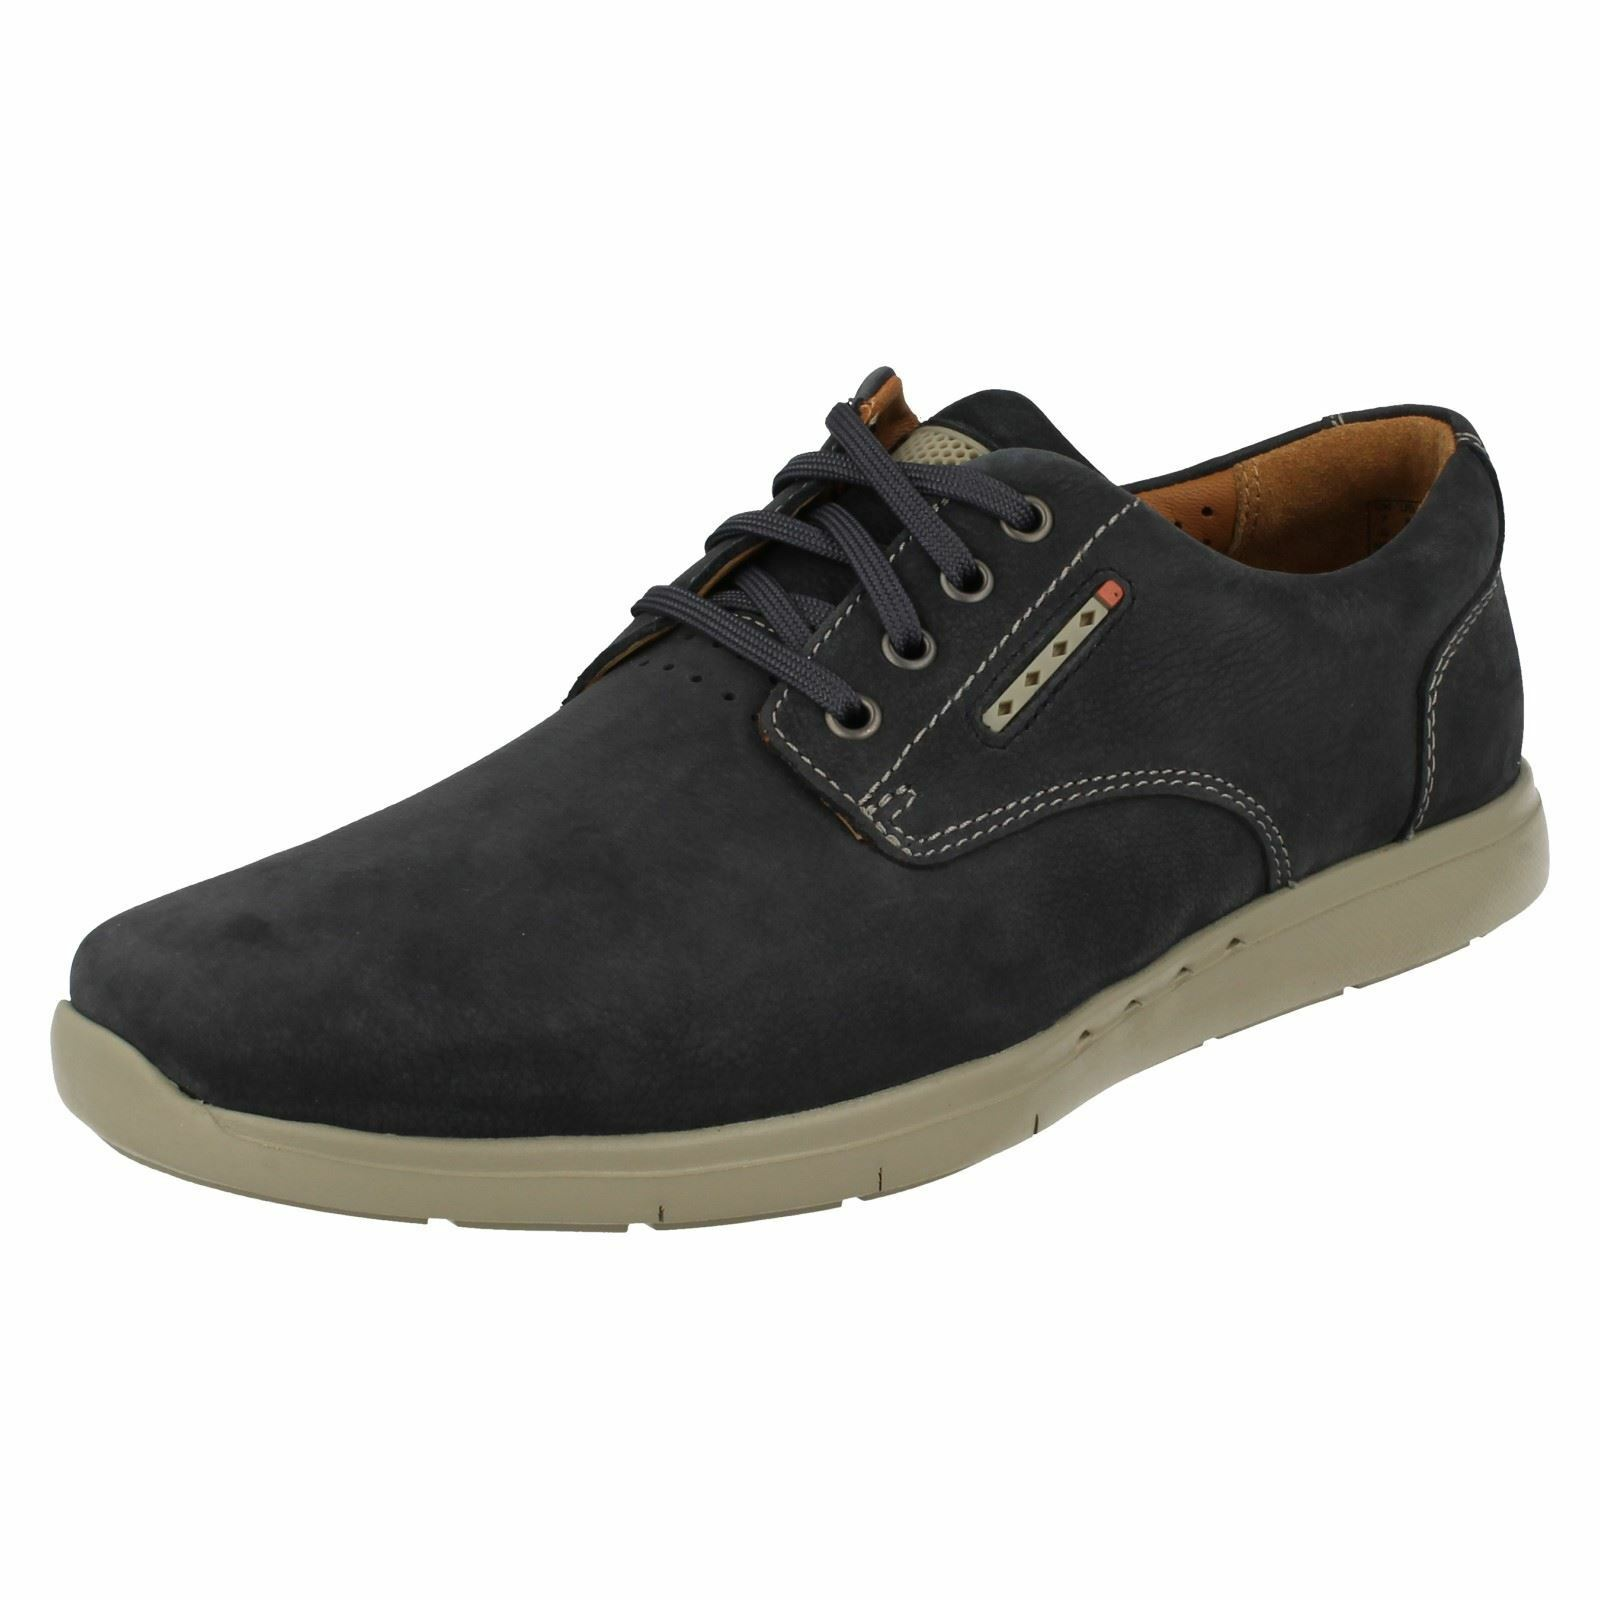 Mens Clarks Unstructured Casual Lace Up shoes 'Unlomac Edge'